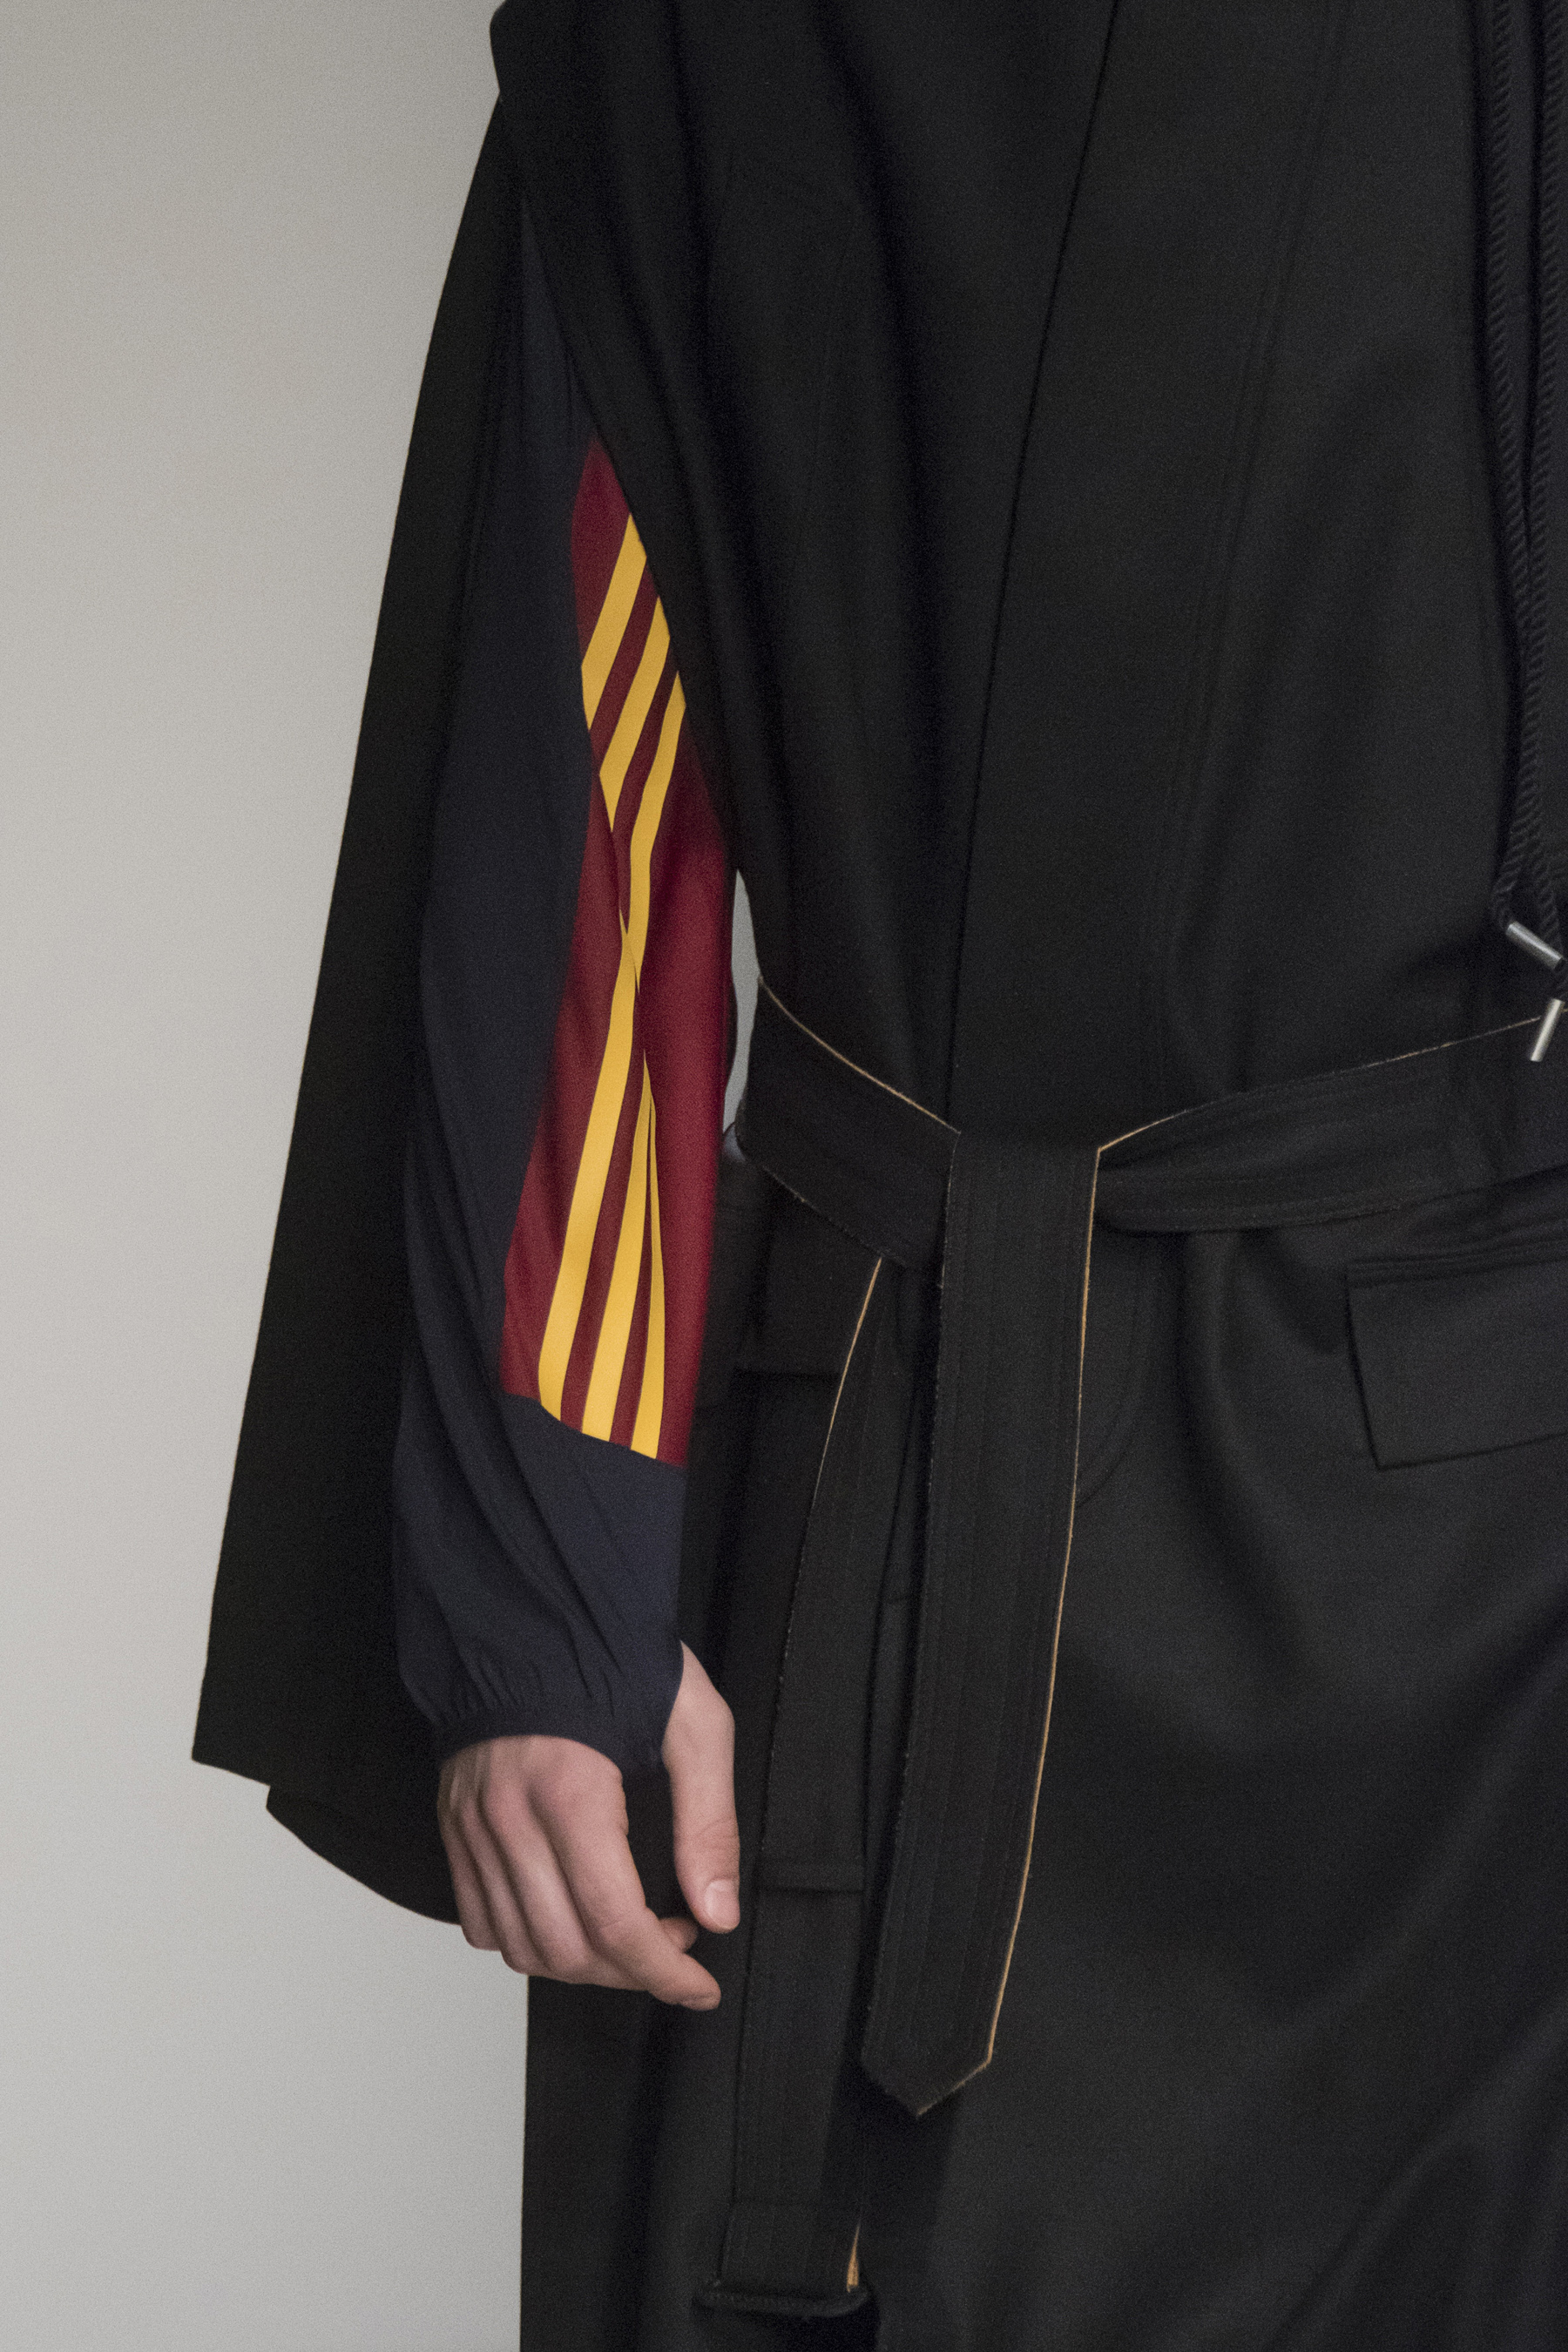 Bed J.w. Ford Fall 2019 Men's Fashion Show Details   The Impression